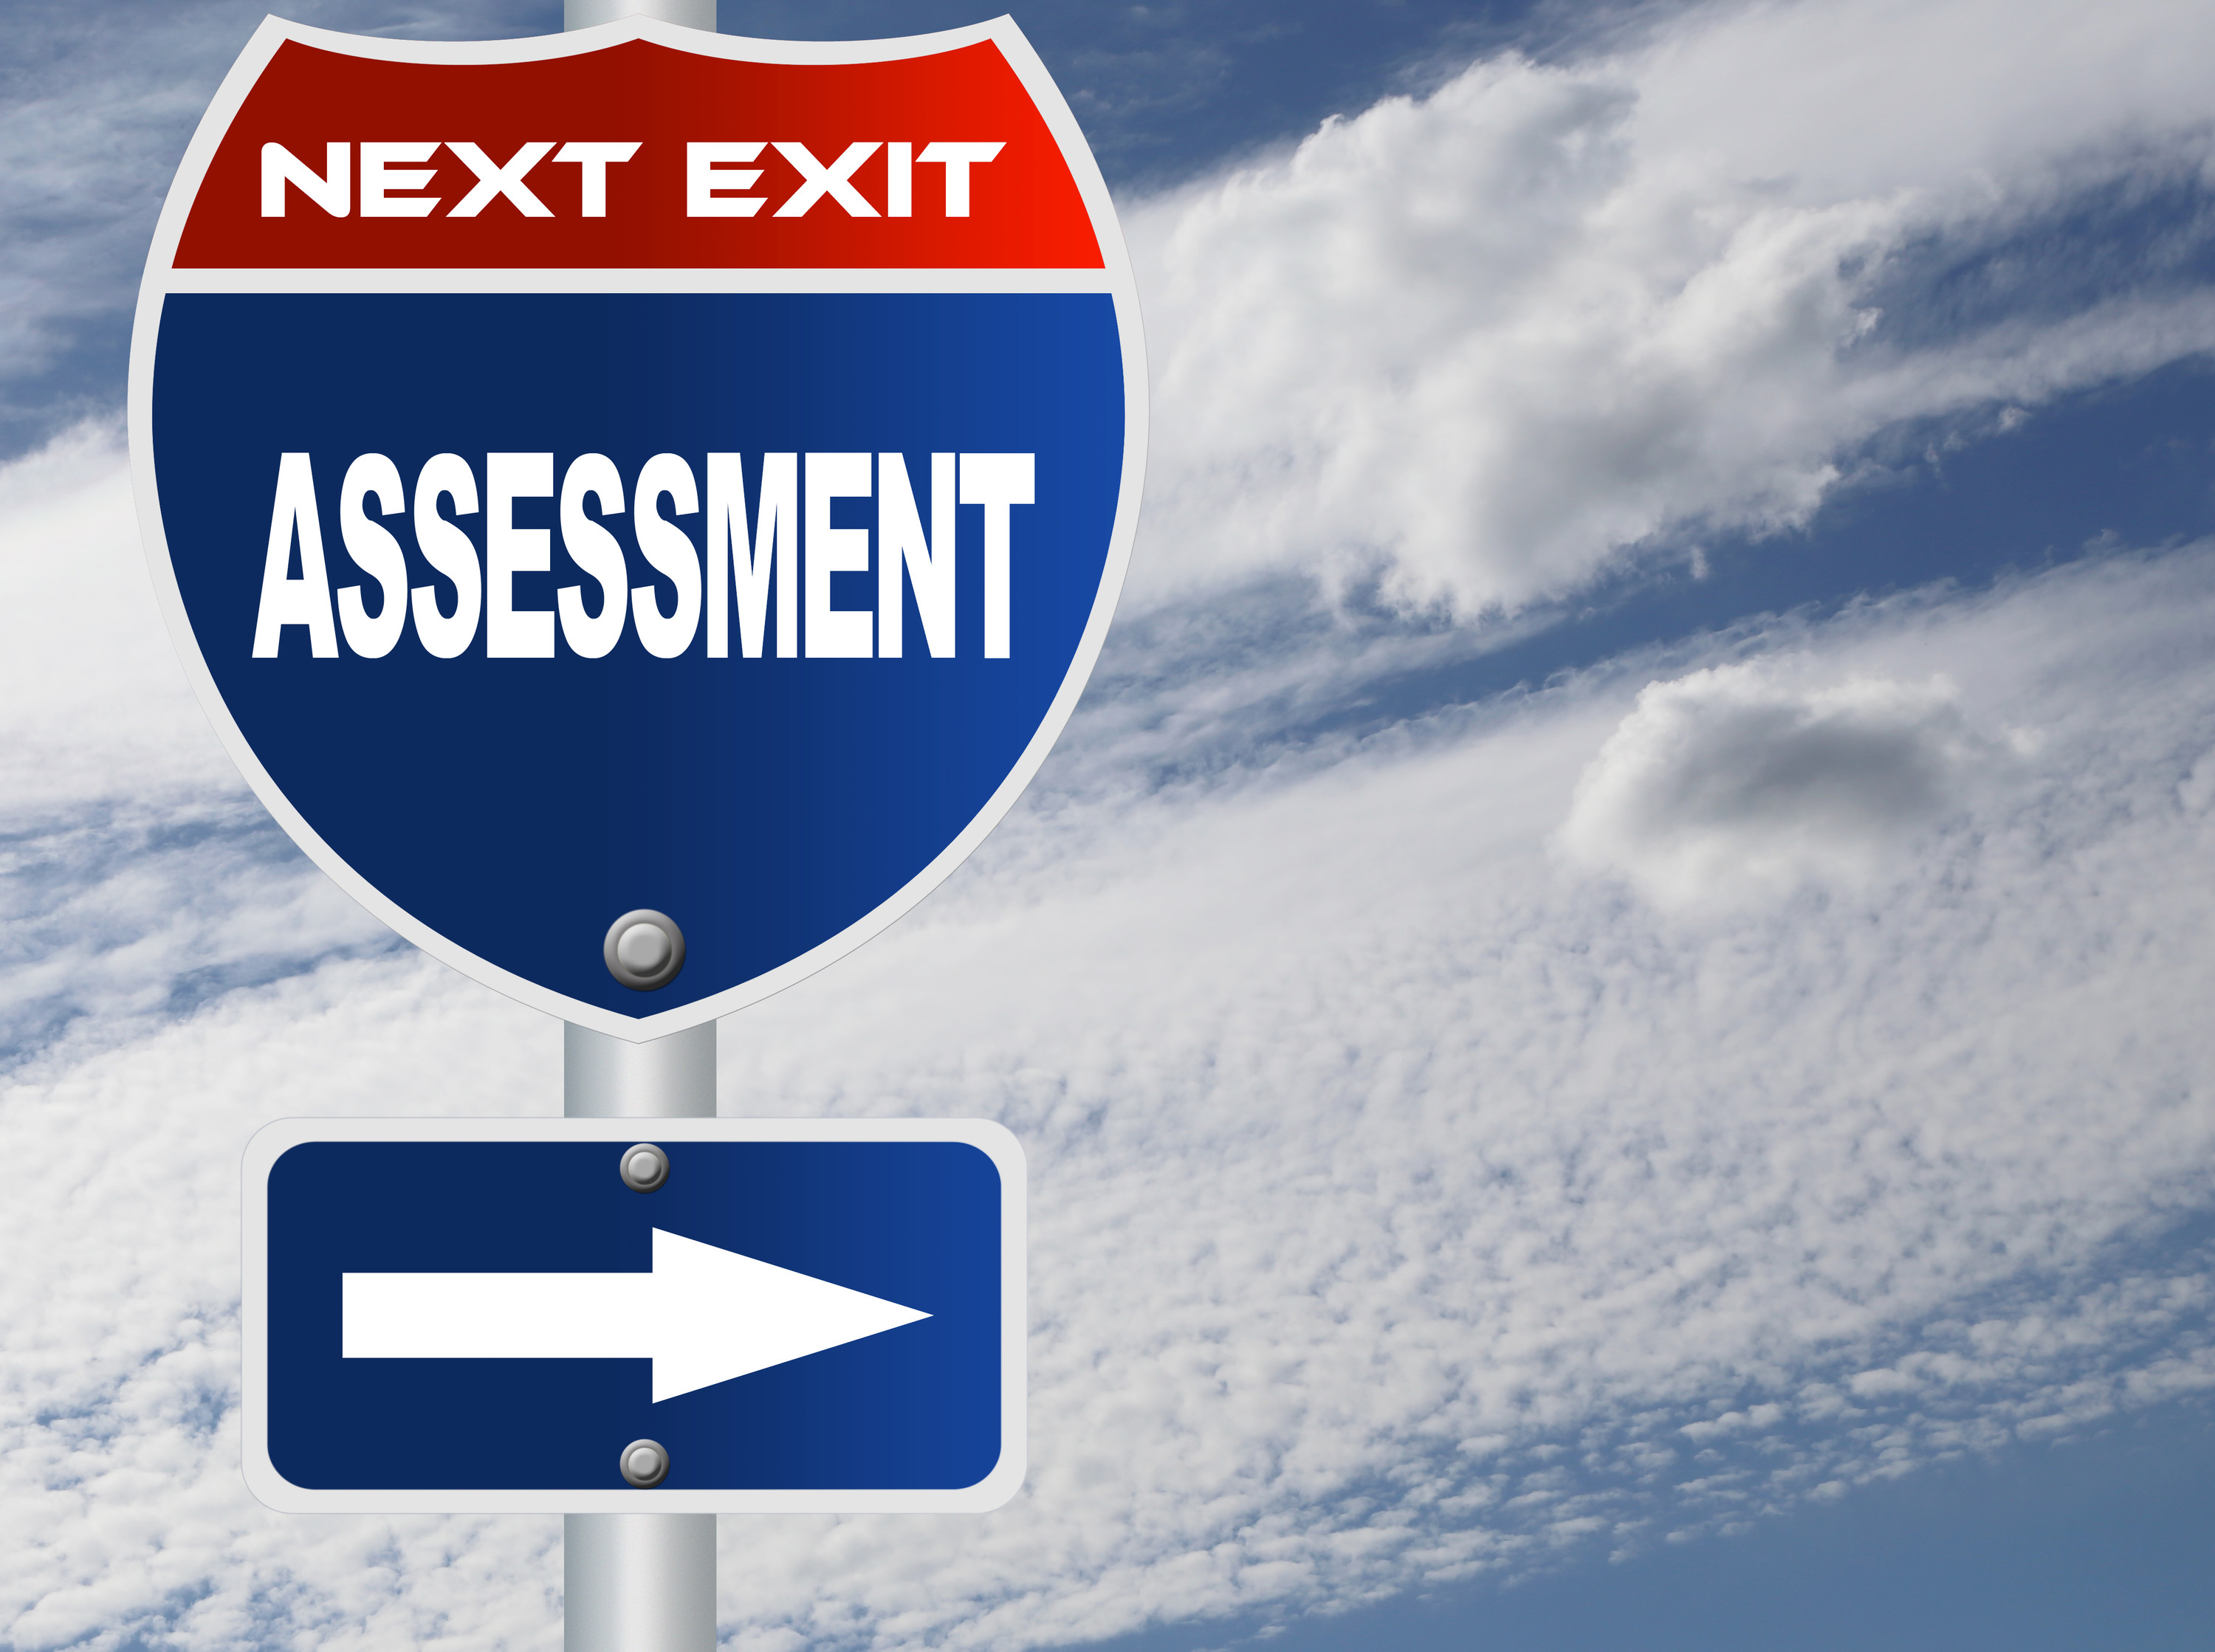 Next Exit: Assessment